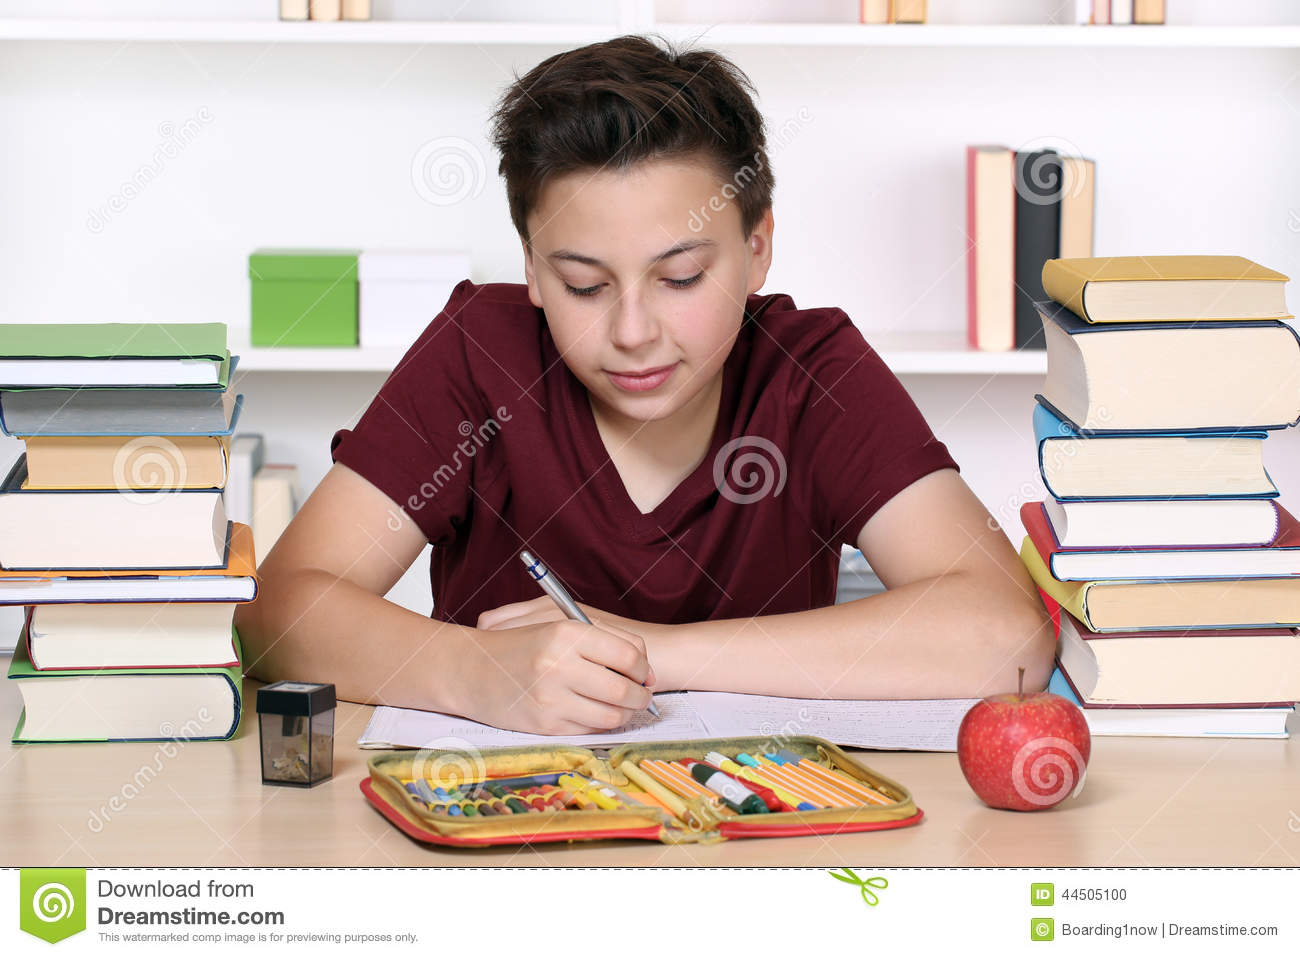 essay schools shortchange boys The story how the schools shortchange boys is about how boys are different when it comes to school girls are more engaged in school than boys and how girls are more calm and pleasant and they succeed through cooperation.